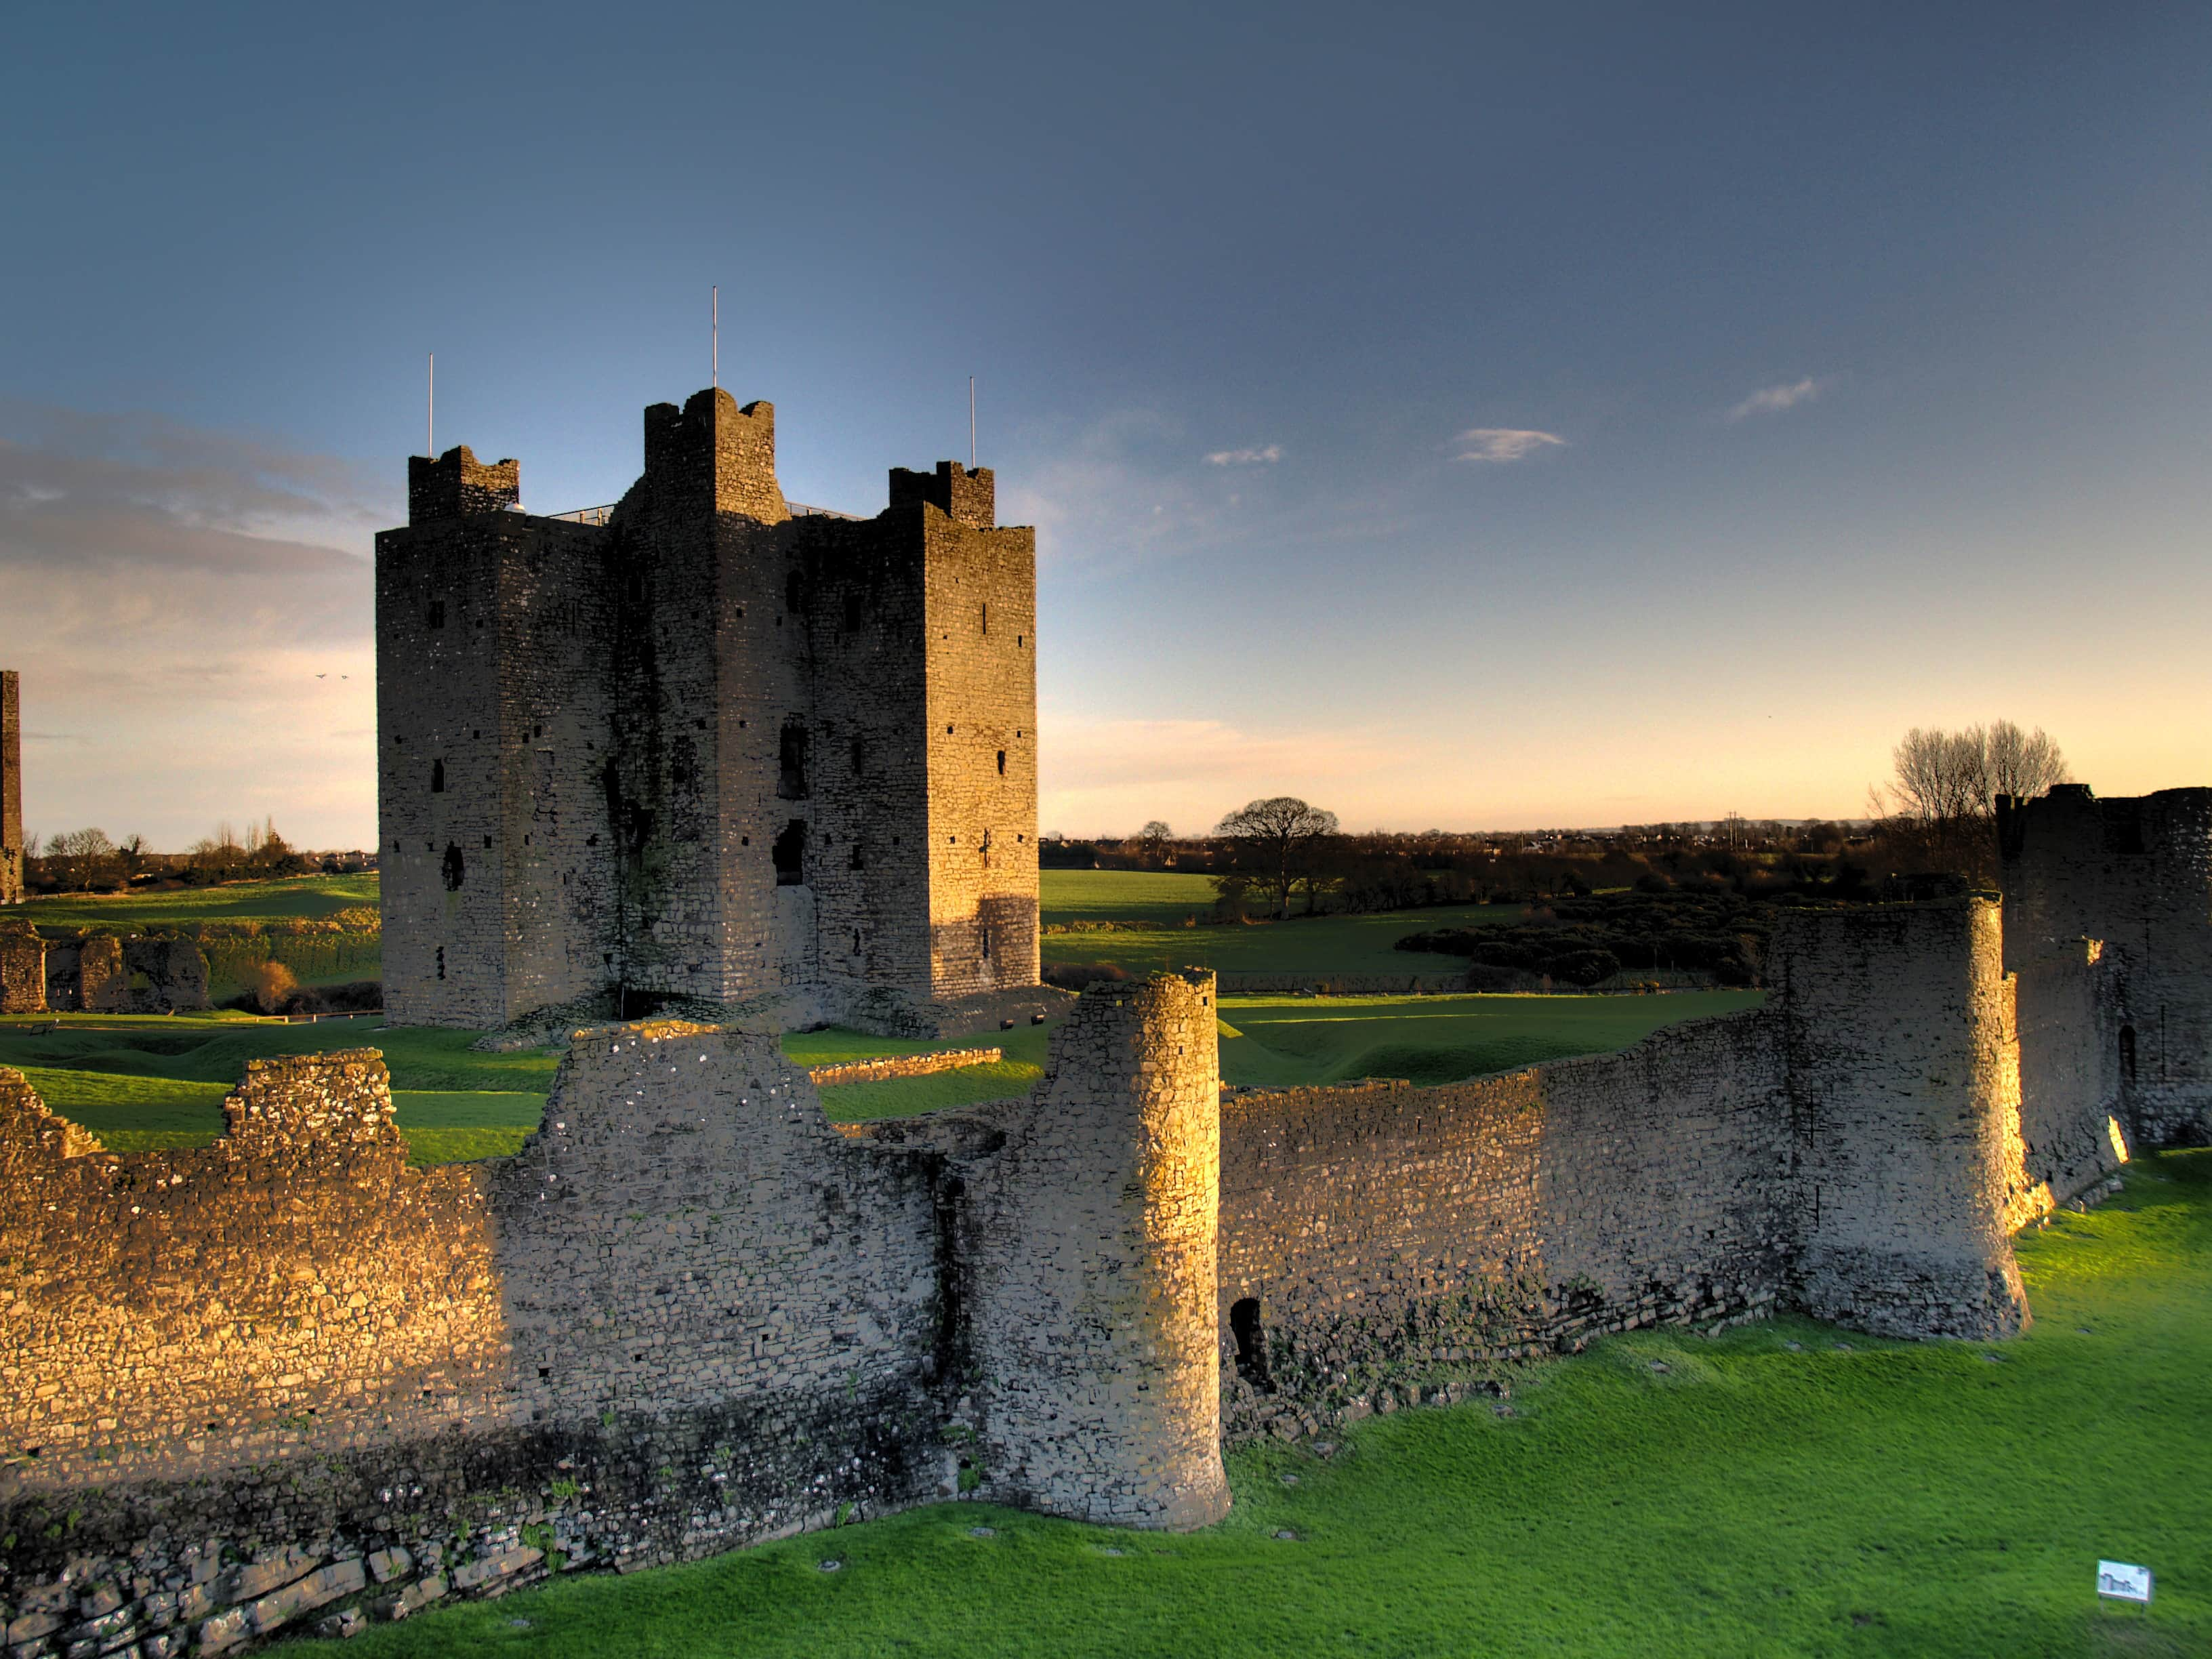 Castles In Ireland - 10 Fascinating Castles You Should See